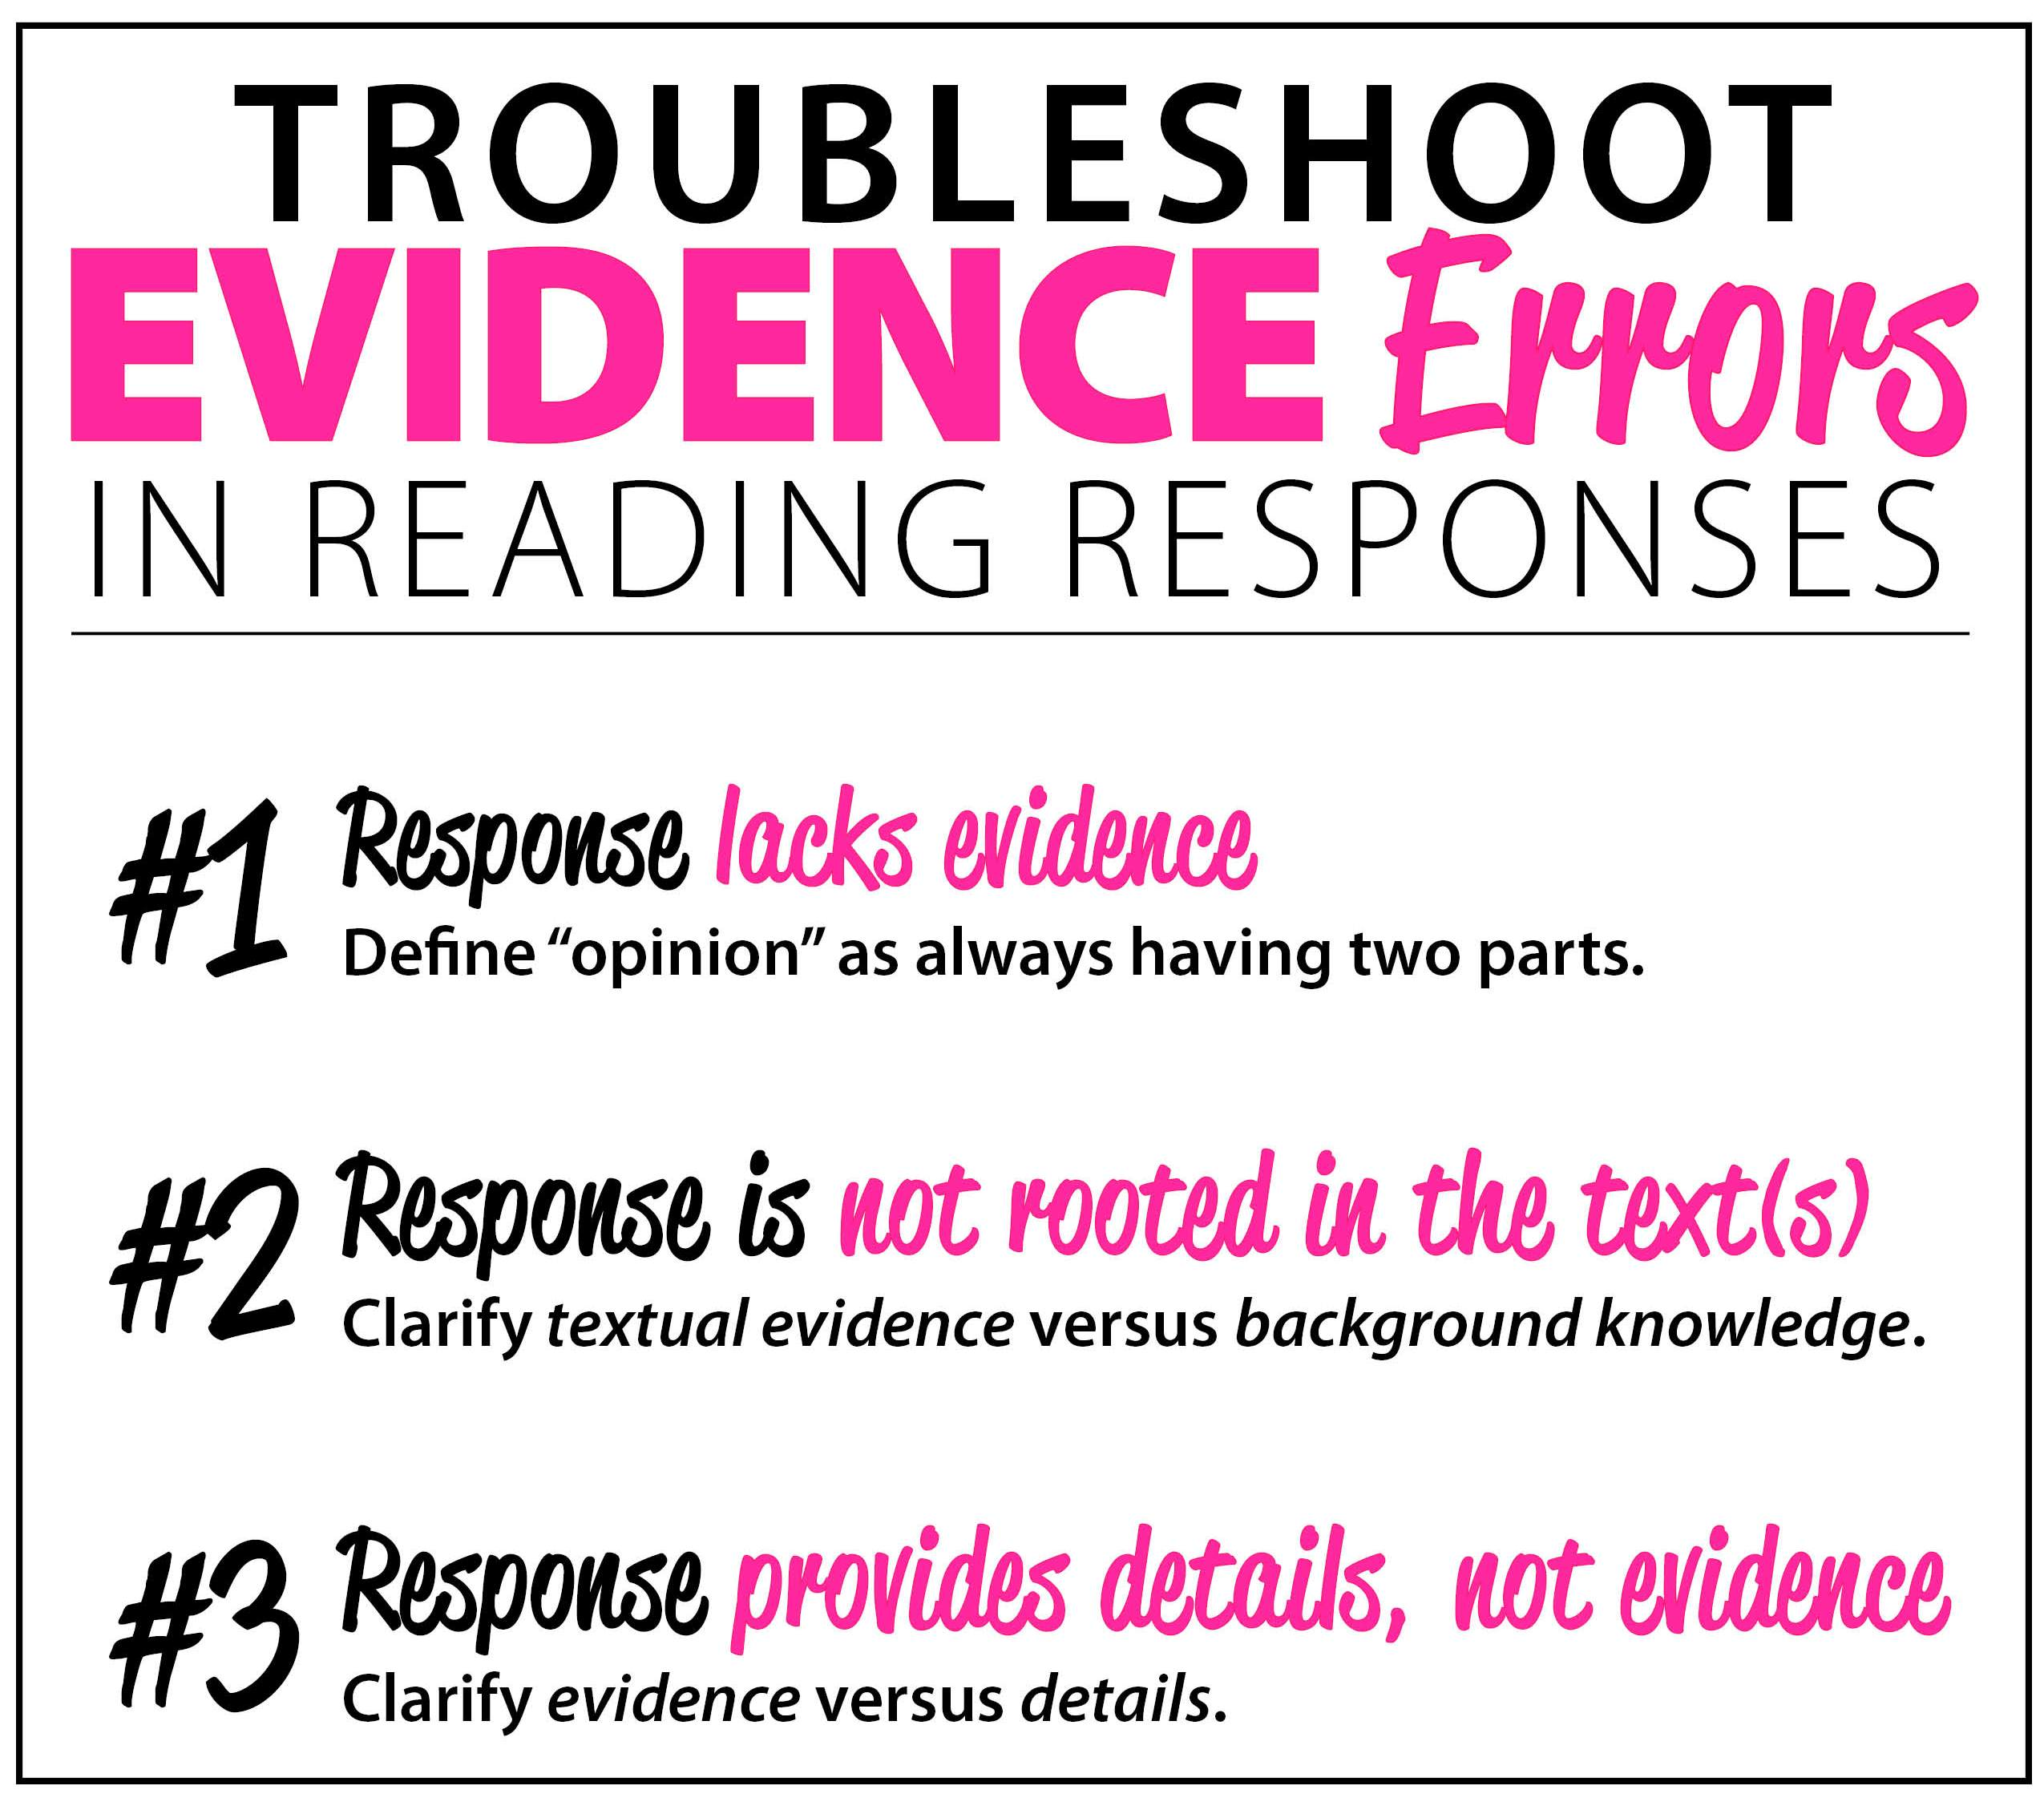 Troubleshoot Evidence Errors in Reading Responses - Downloadable Resource